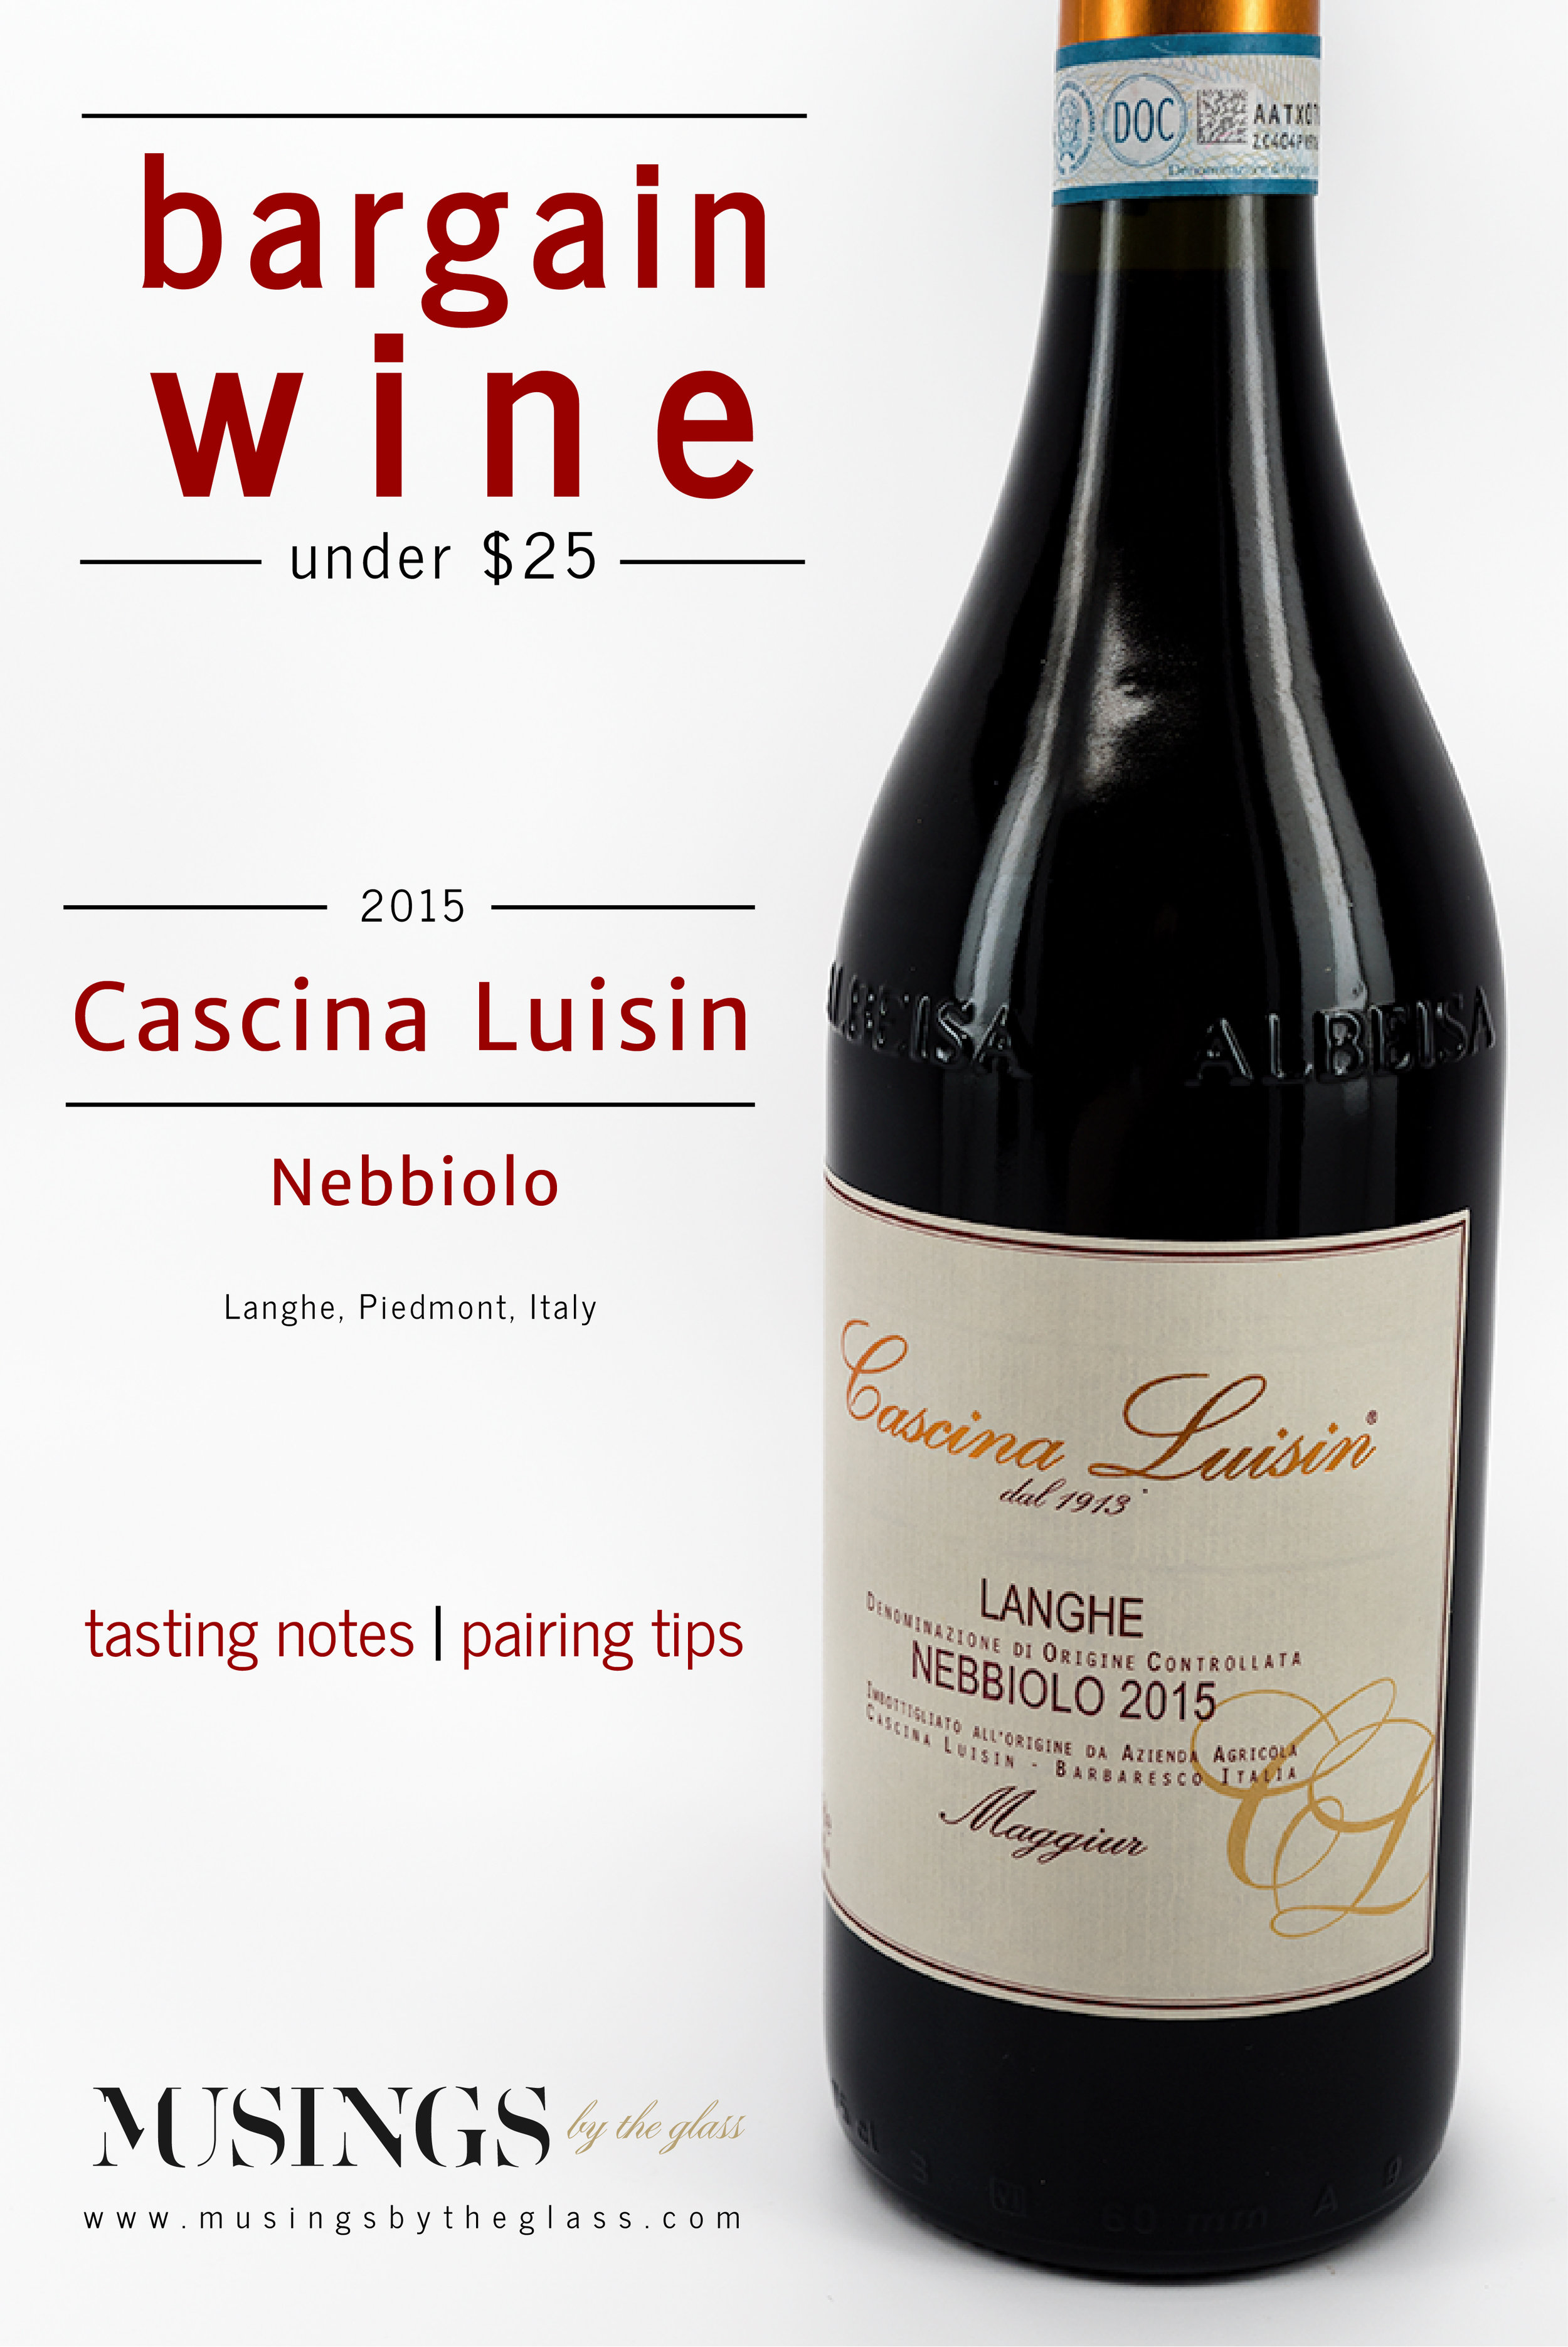 Musings by the Glass - Bargain Wines - 2015 Cascina Luisin Langhe Nebbiolo from Langhe, Piedmont, Italy